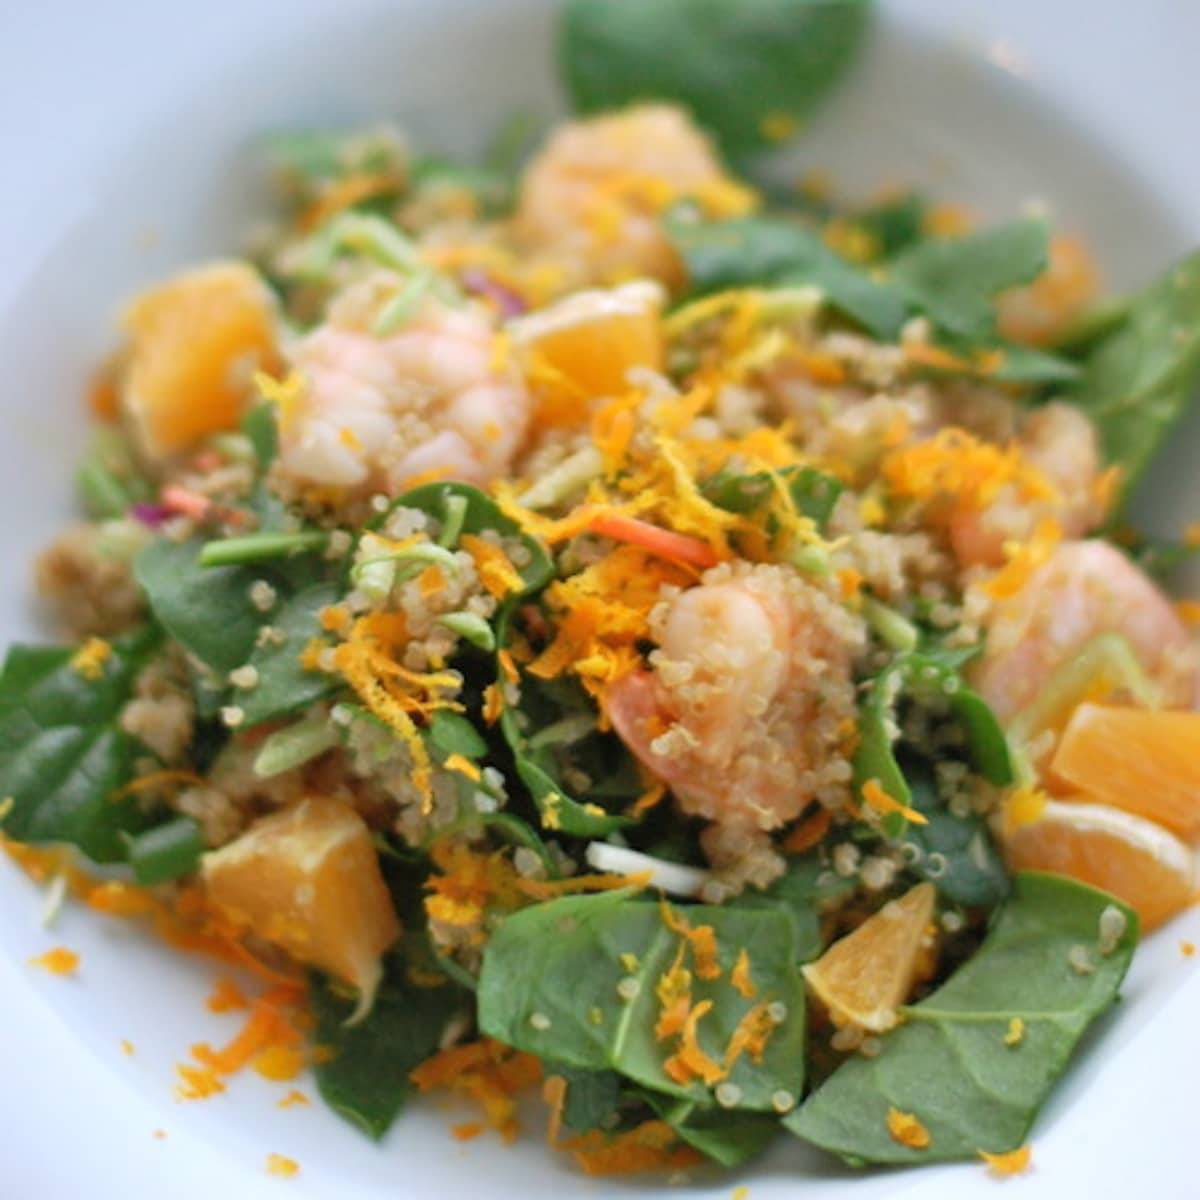 Shrimp and quinoa salad in a bowl with orange zest topping.